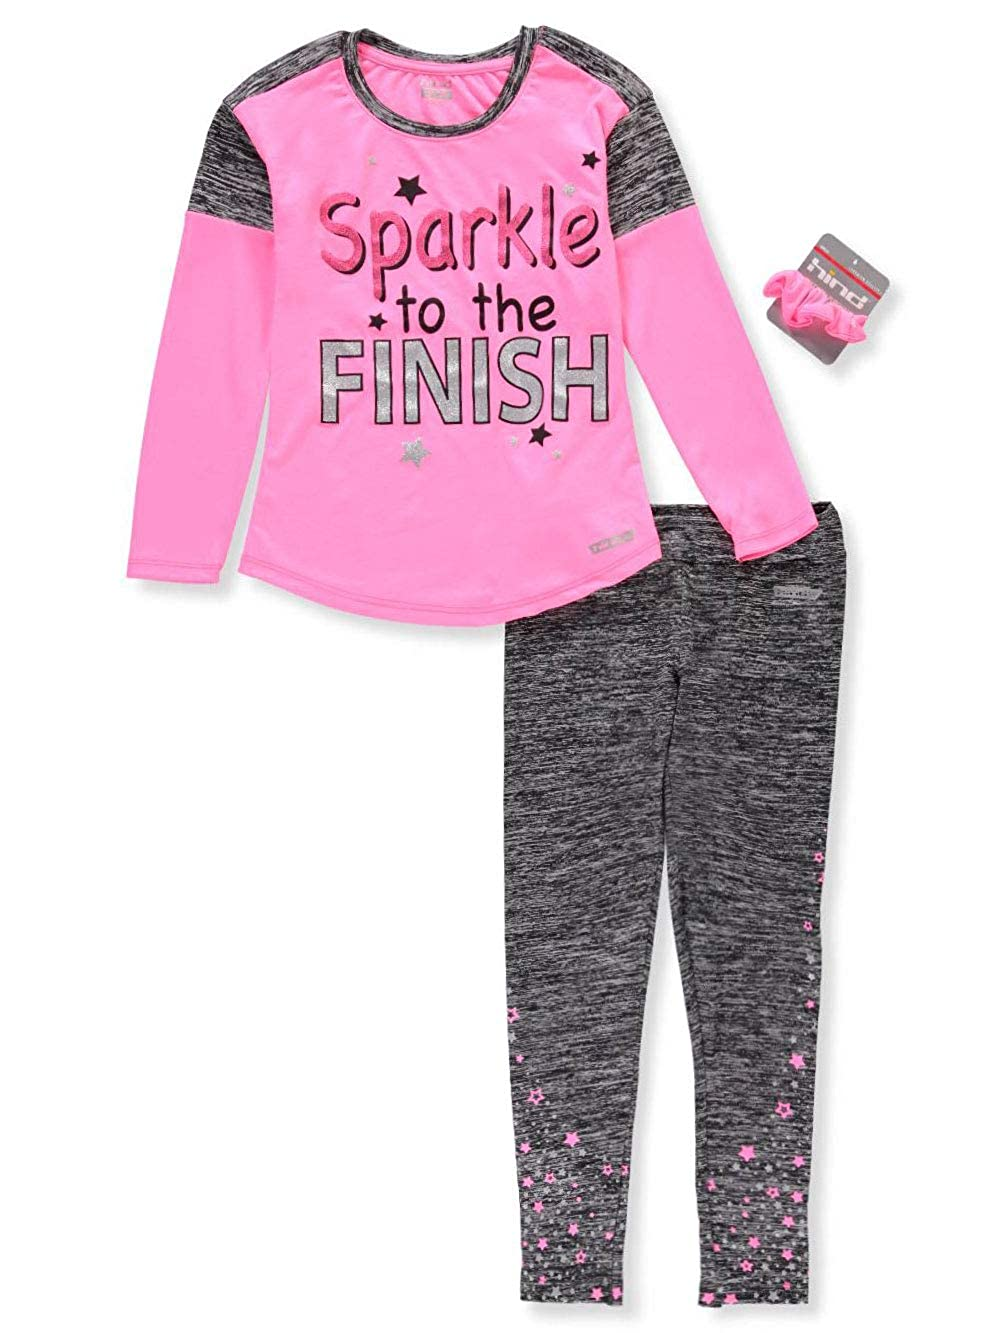 Hind Girls' 2-Piece Performance Leggings Set Outfit with Ponytail Holder